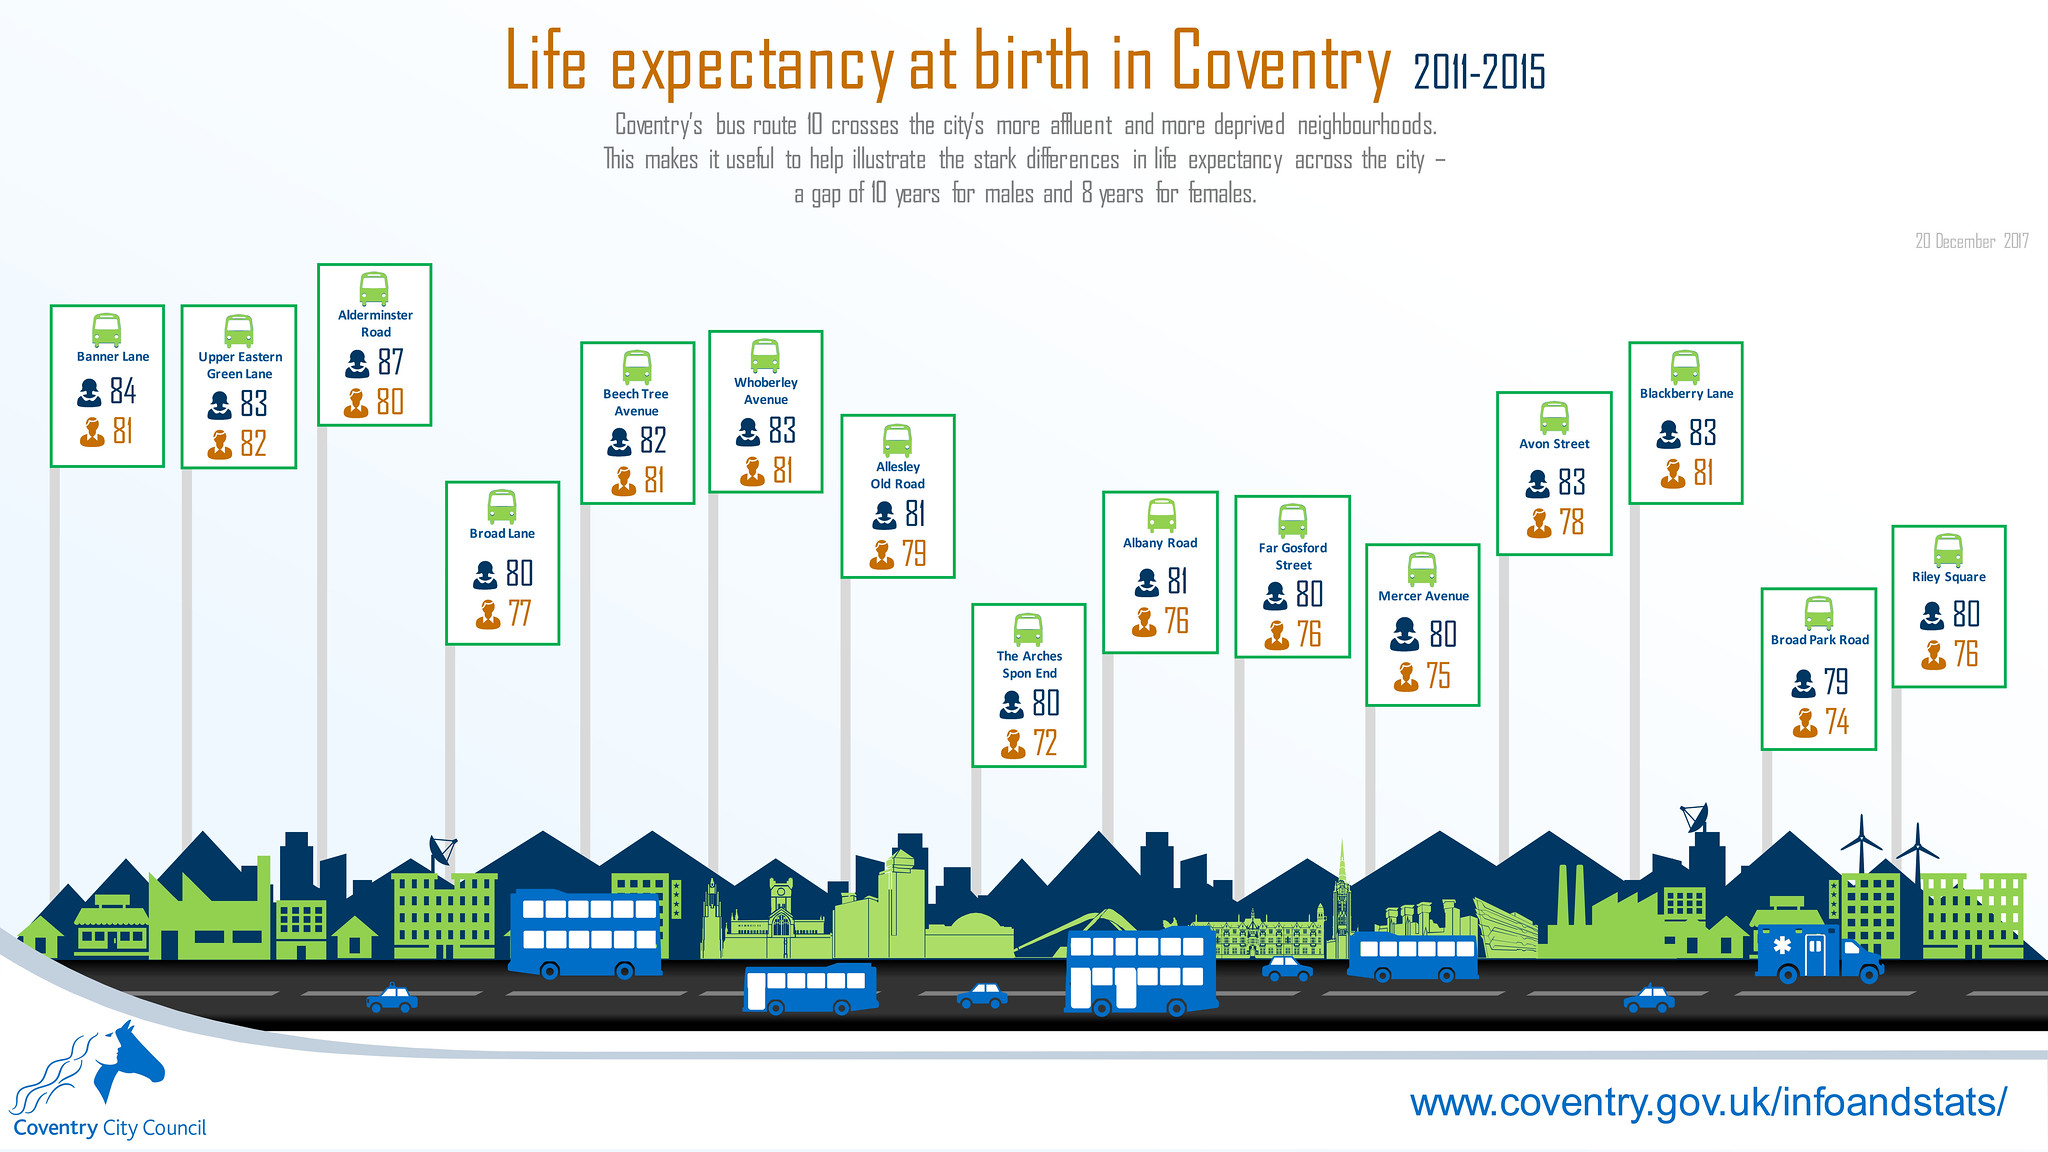 Life expectancy along Coventry bus route 10 infographic (December 2017)